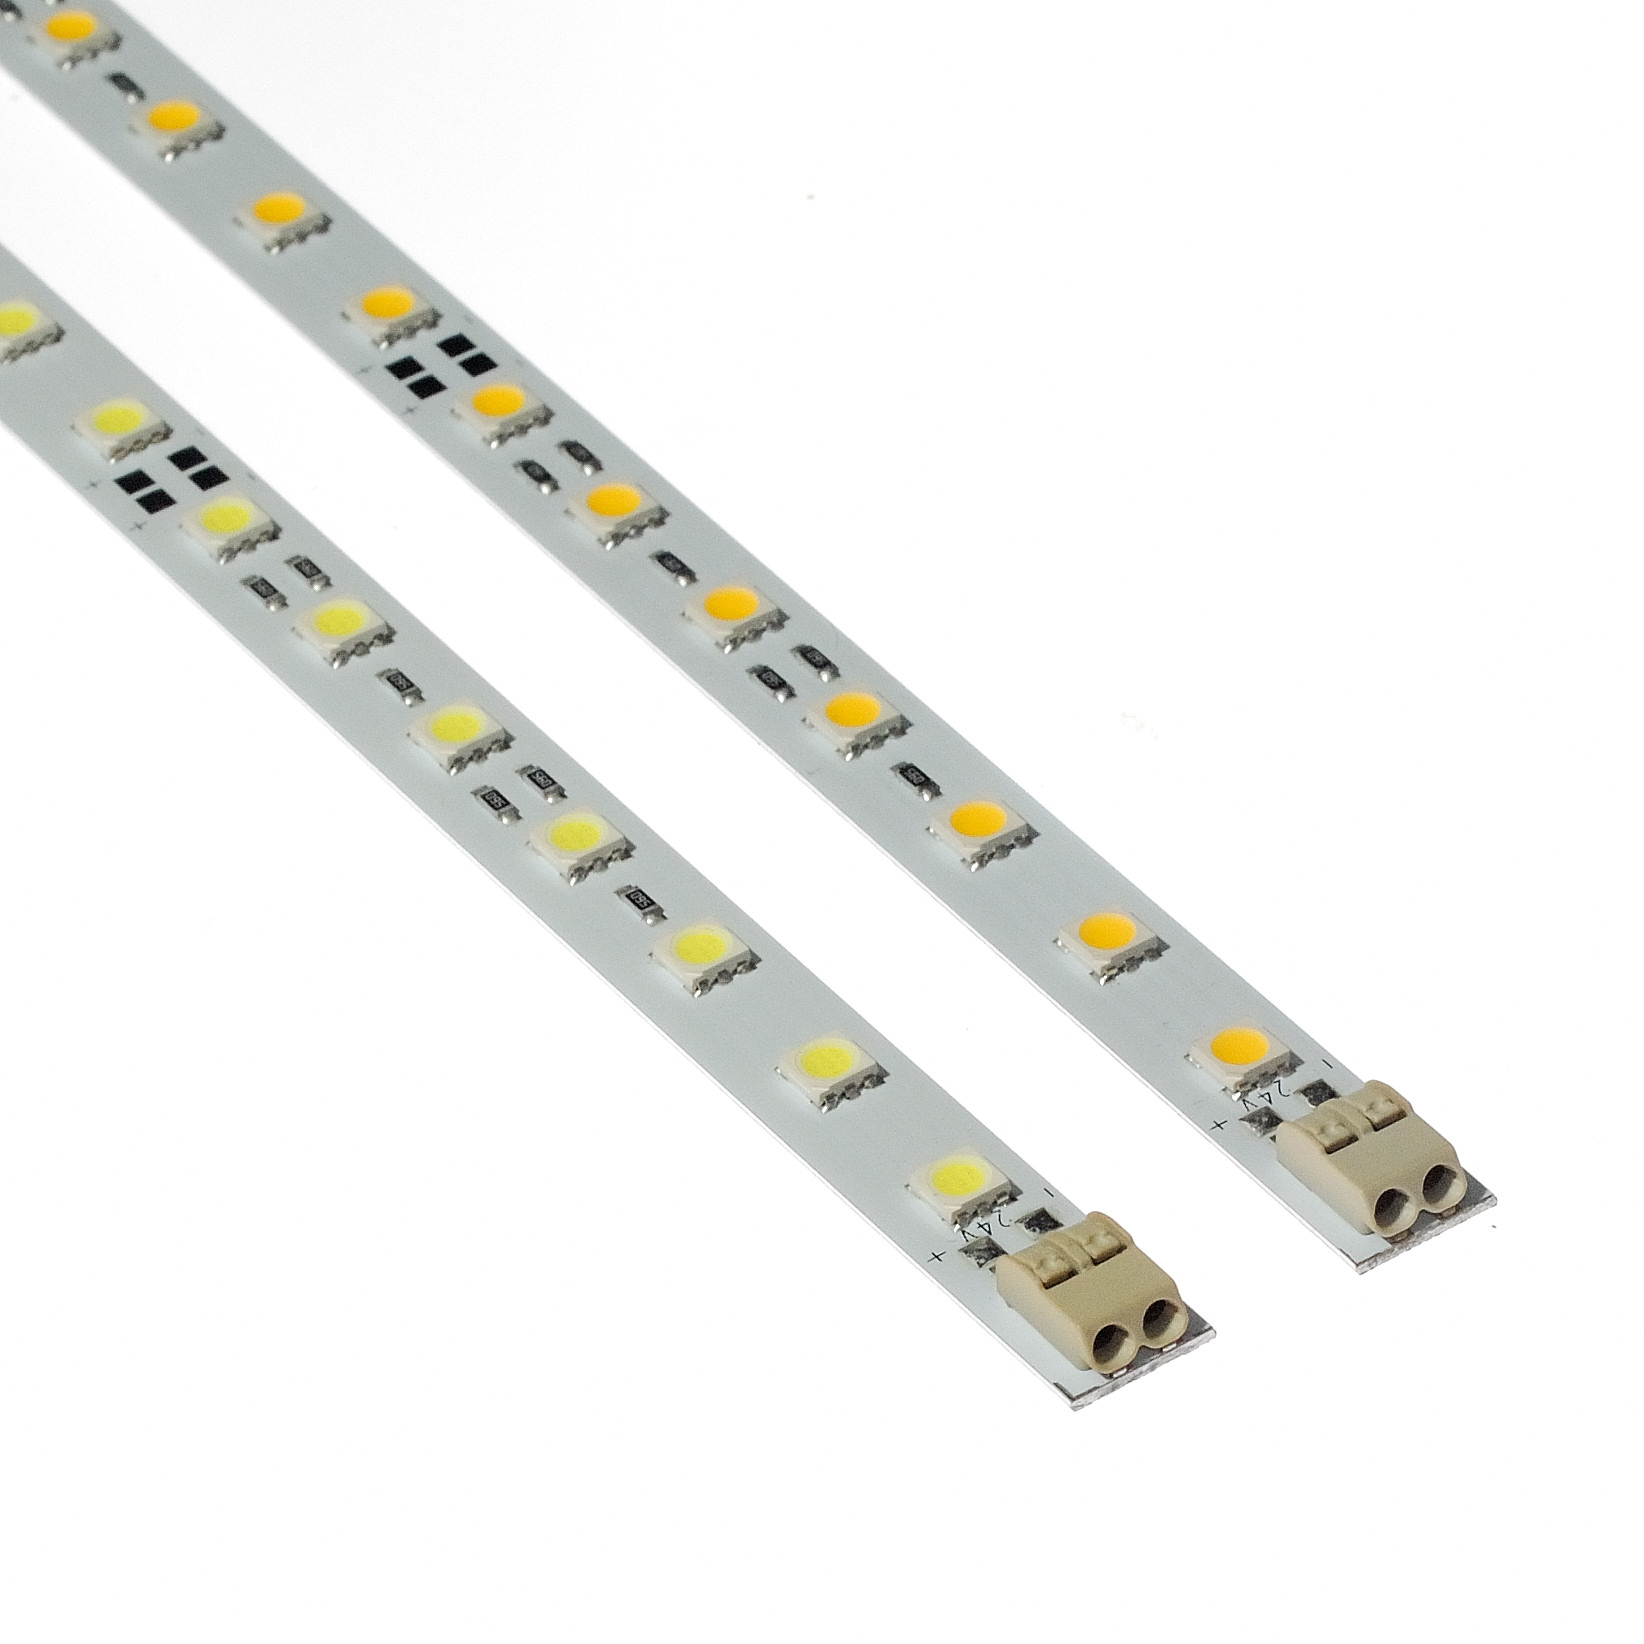 24vdc warm white rigid deco linear strip light bar